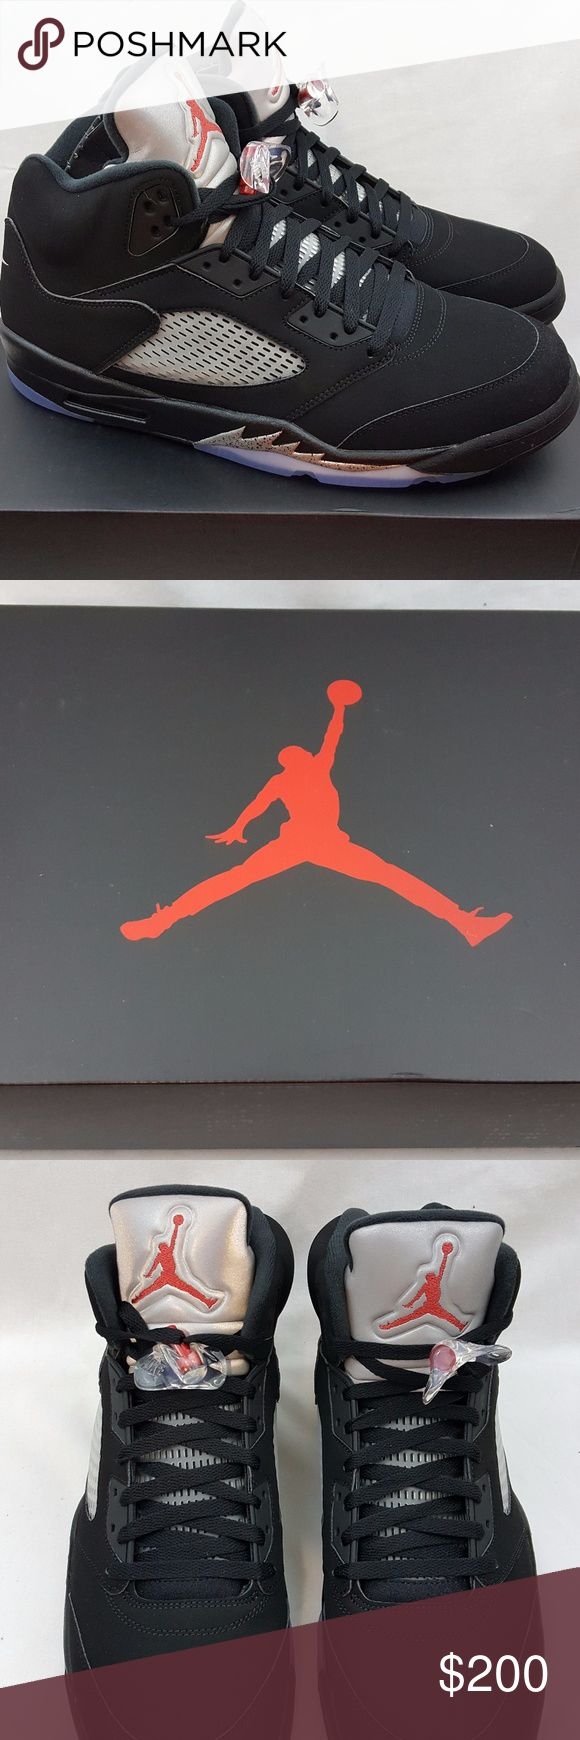 Nike Air Jordan 5 V Retro OG Black Red Size 15 Nike Air Jordan 5 V Retro OG Black Fire Red Metallic Silver 845035-003 Size 15 Brand: Nike Name: Air Jordan 5 V Retro Colorway: Black Fire Red Metallic Silver  Style Code: 845035-003 Year of Release: 2016 Size: 15 Condition: Brand new with box. Included Accessories: NA Additional Information: 100% authentic merchandise or your payment will be refunded in full. Air Jordan Shoes Athletic Shoes